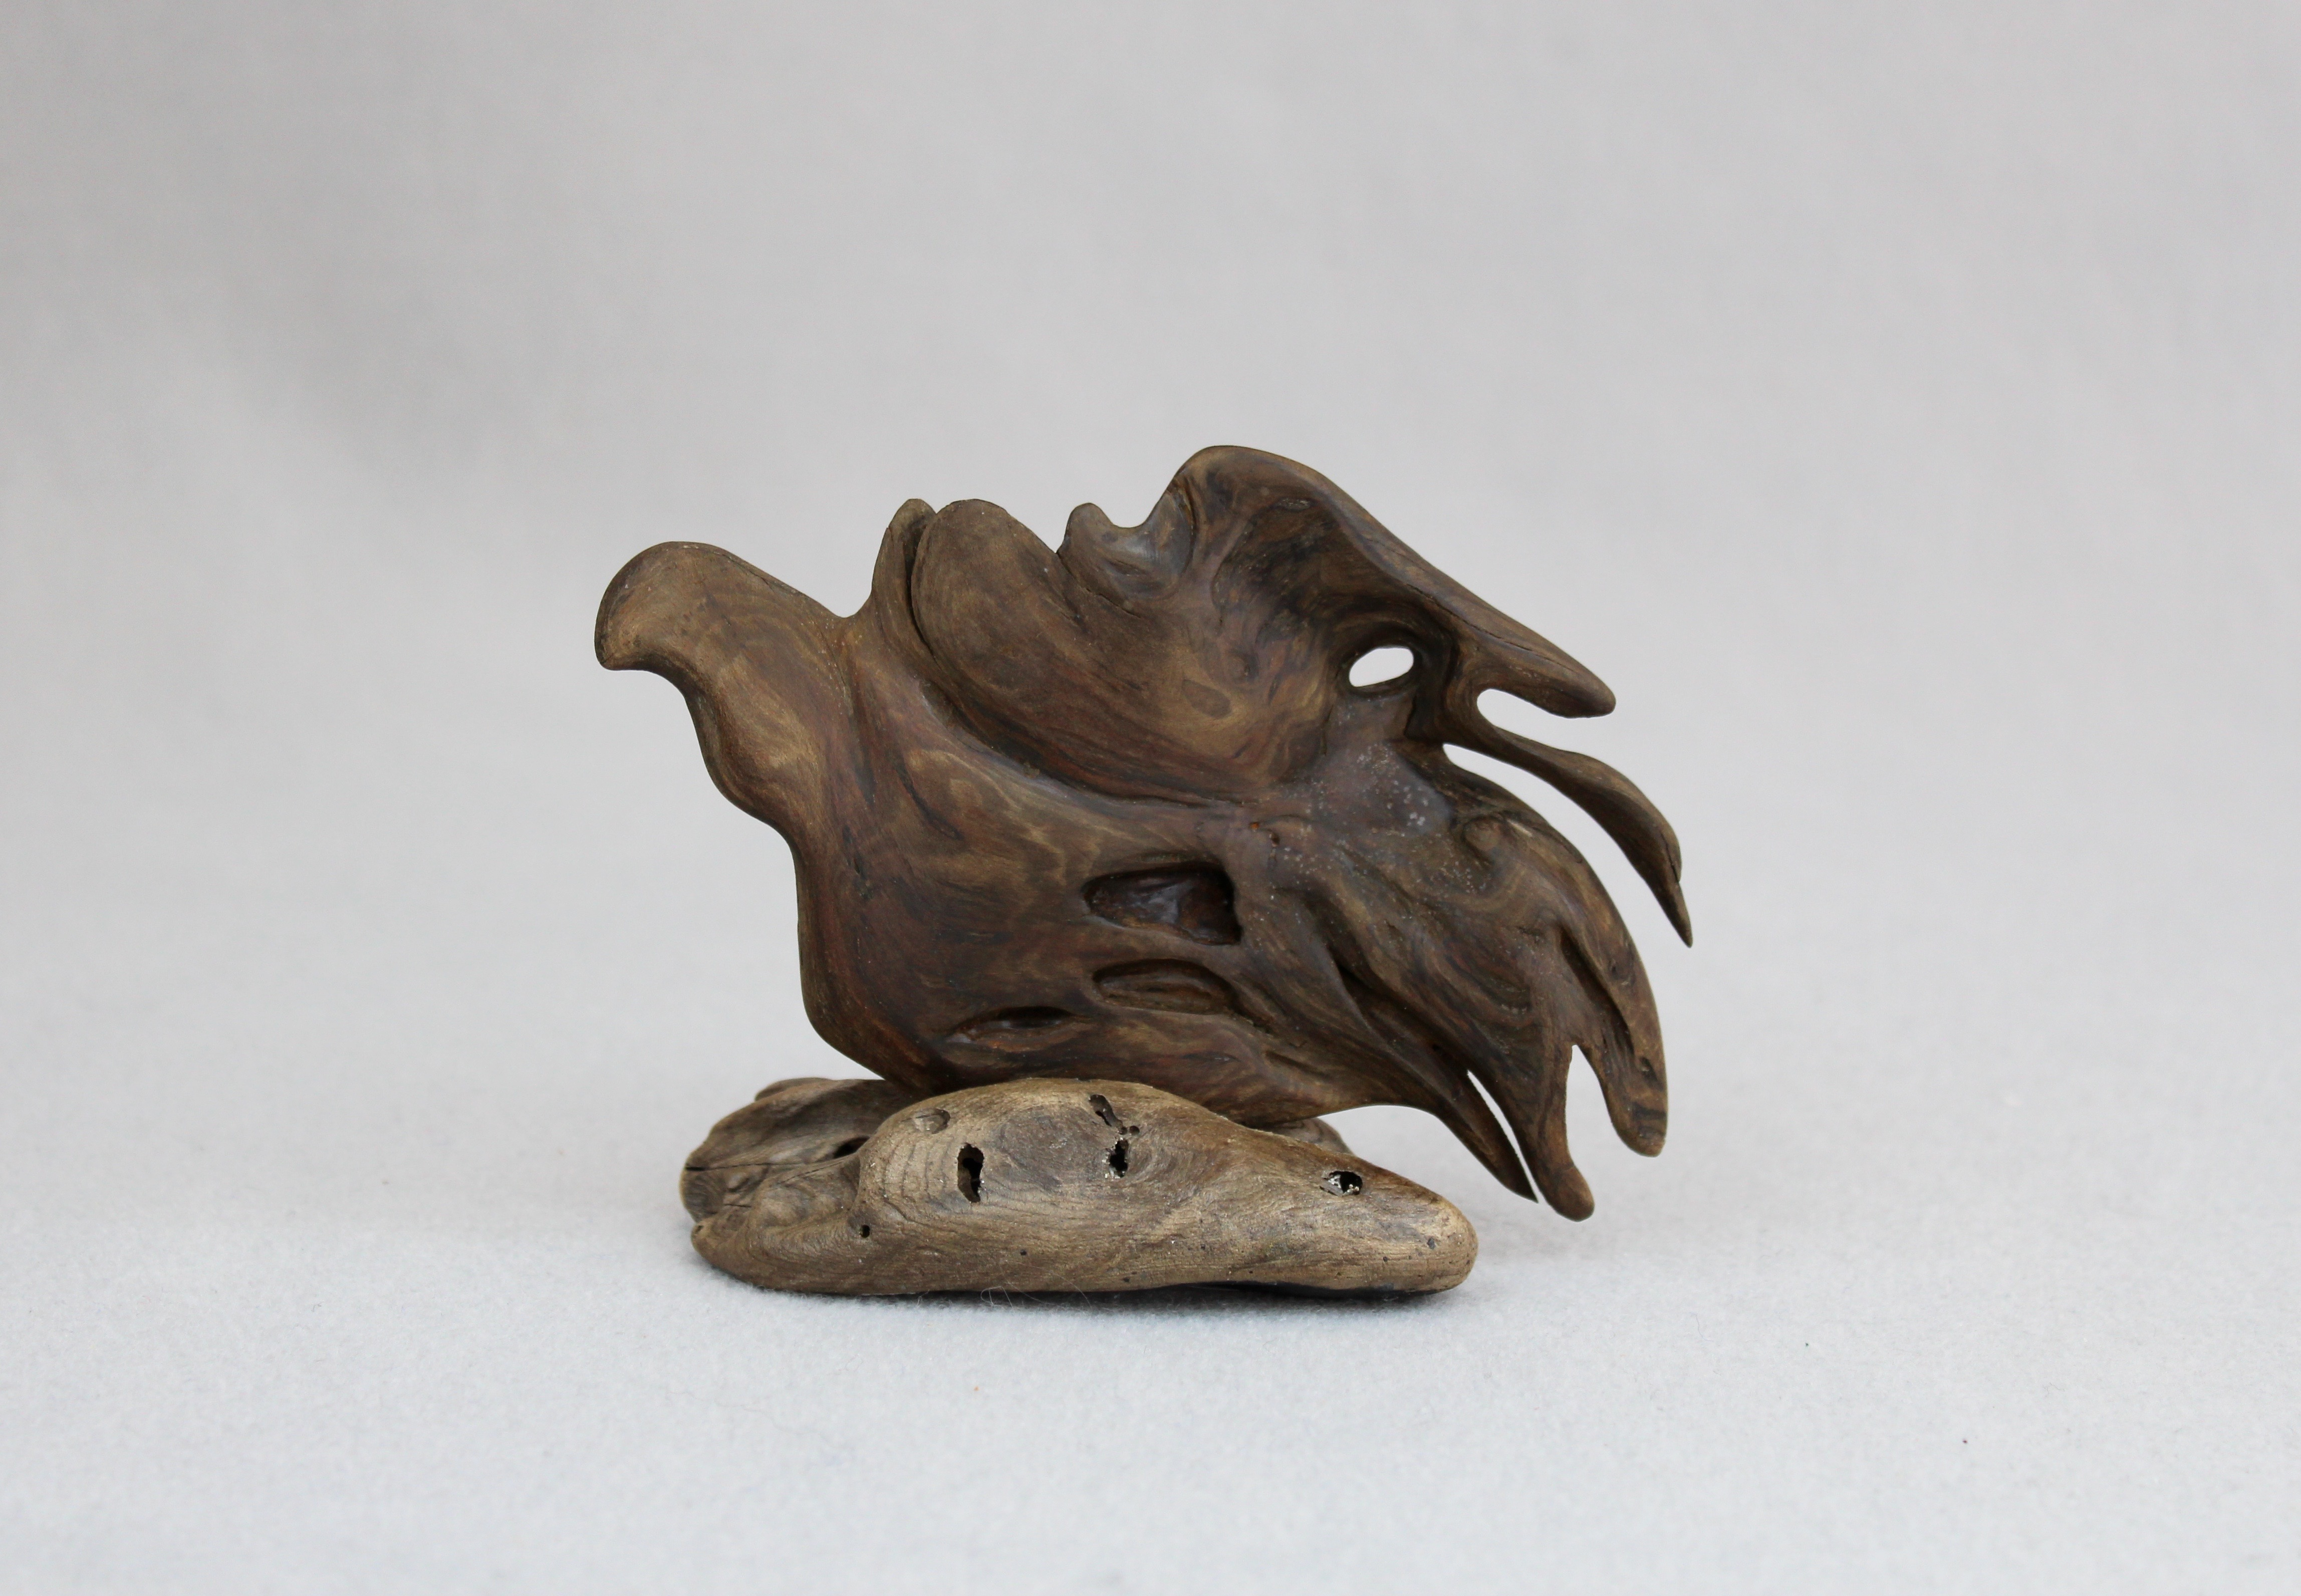 Miniature sculptures northwest driftwood artists